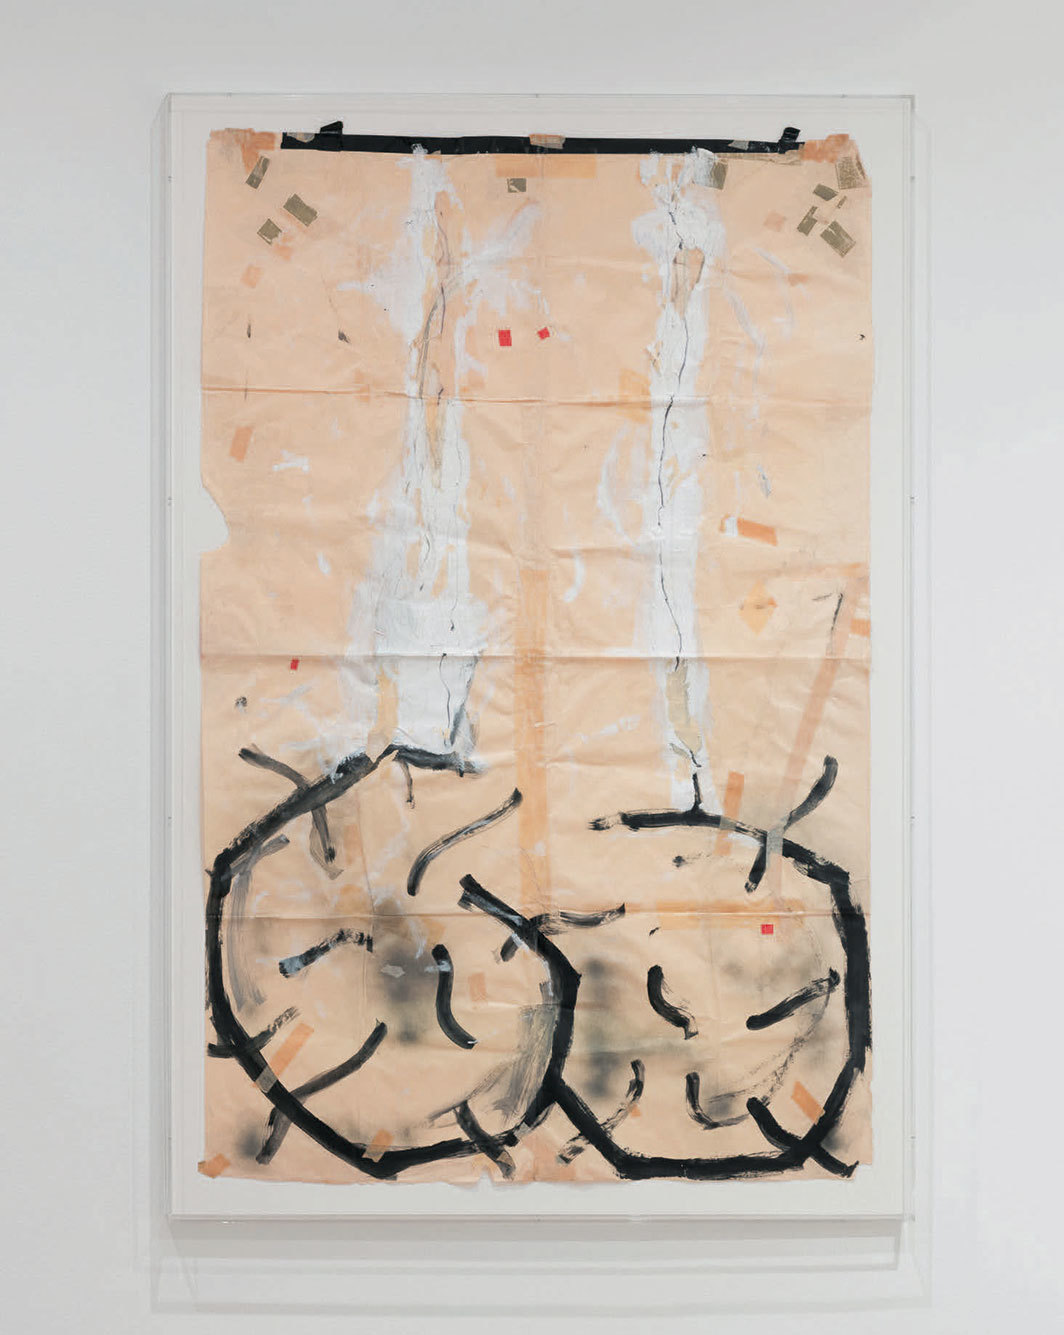 "Pope.L, Egg Eating Contest (Basement version), 1990, acrylic, pressure-sensitive tape, spray paint, and ballpoint pen on paper, 65 1⁄2 × 42"". © Pope.L."